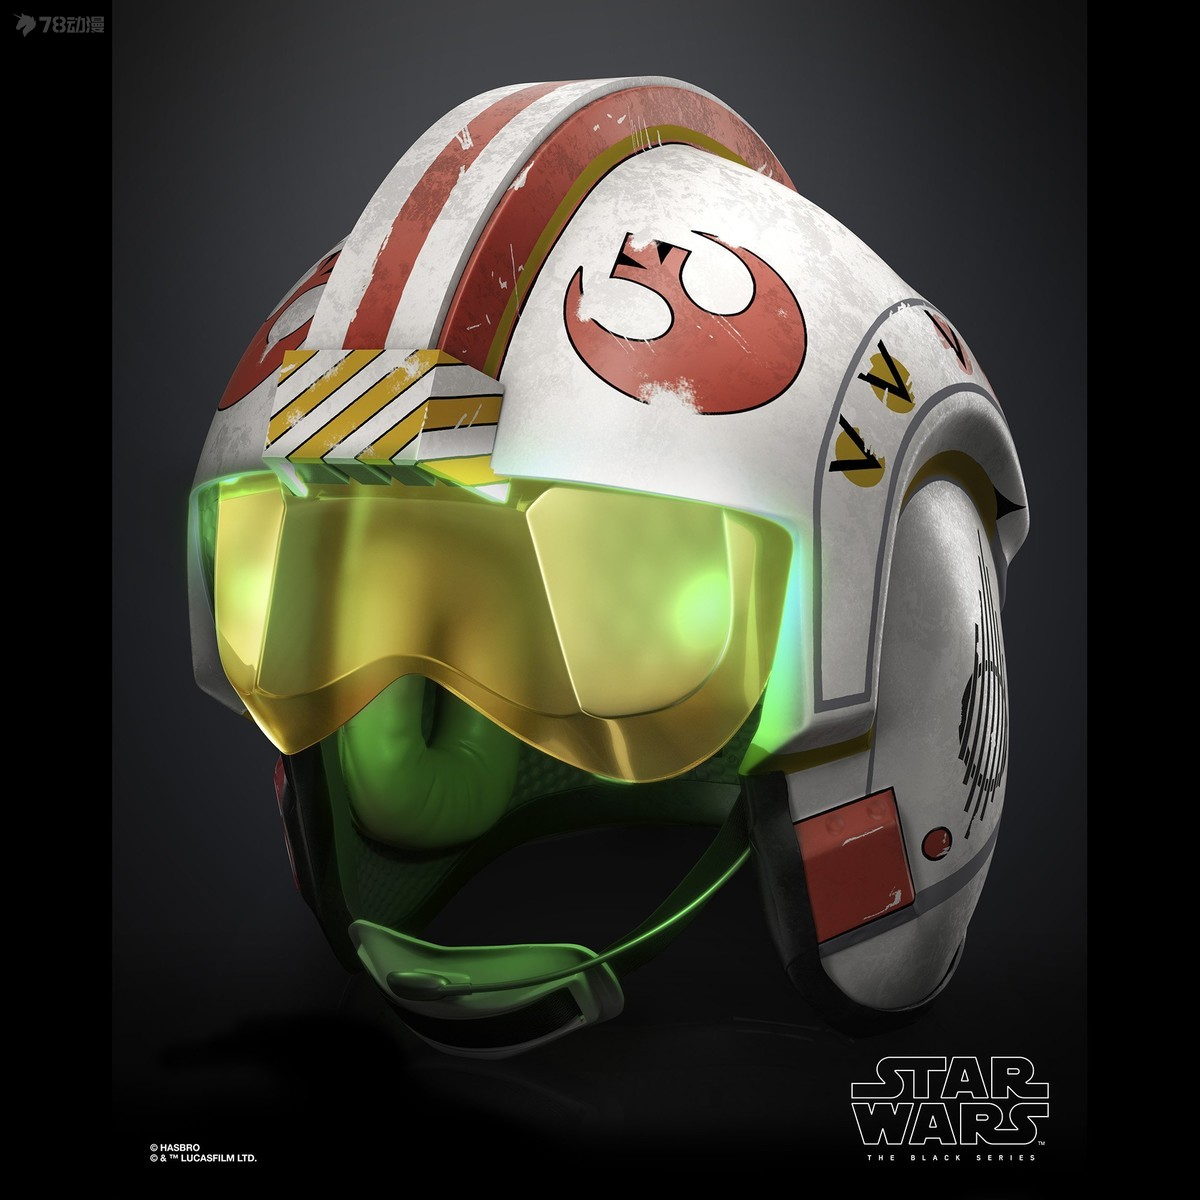 E5808_Star_Wars_The_Black_Series_Luke_Skywalker_Battle_Simulation_Helmet_01_2000x.jpg